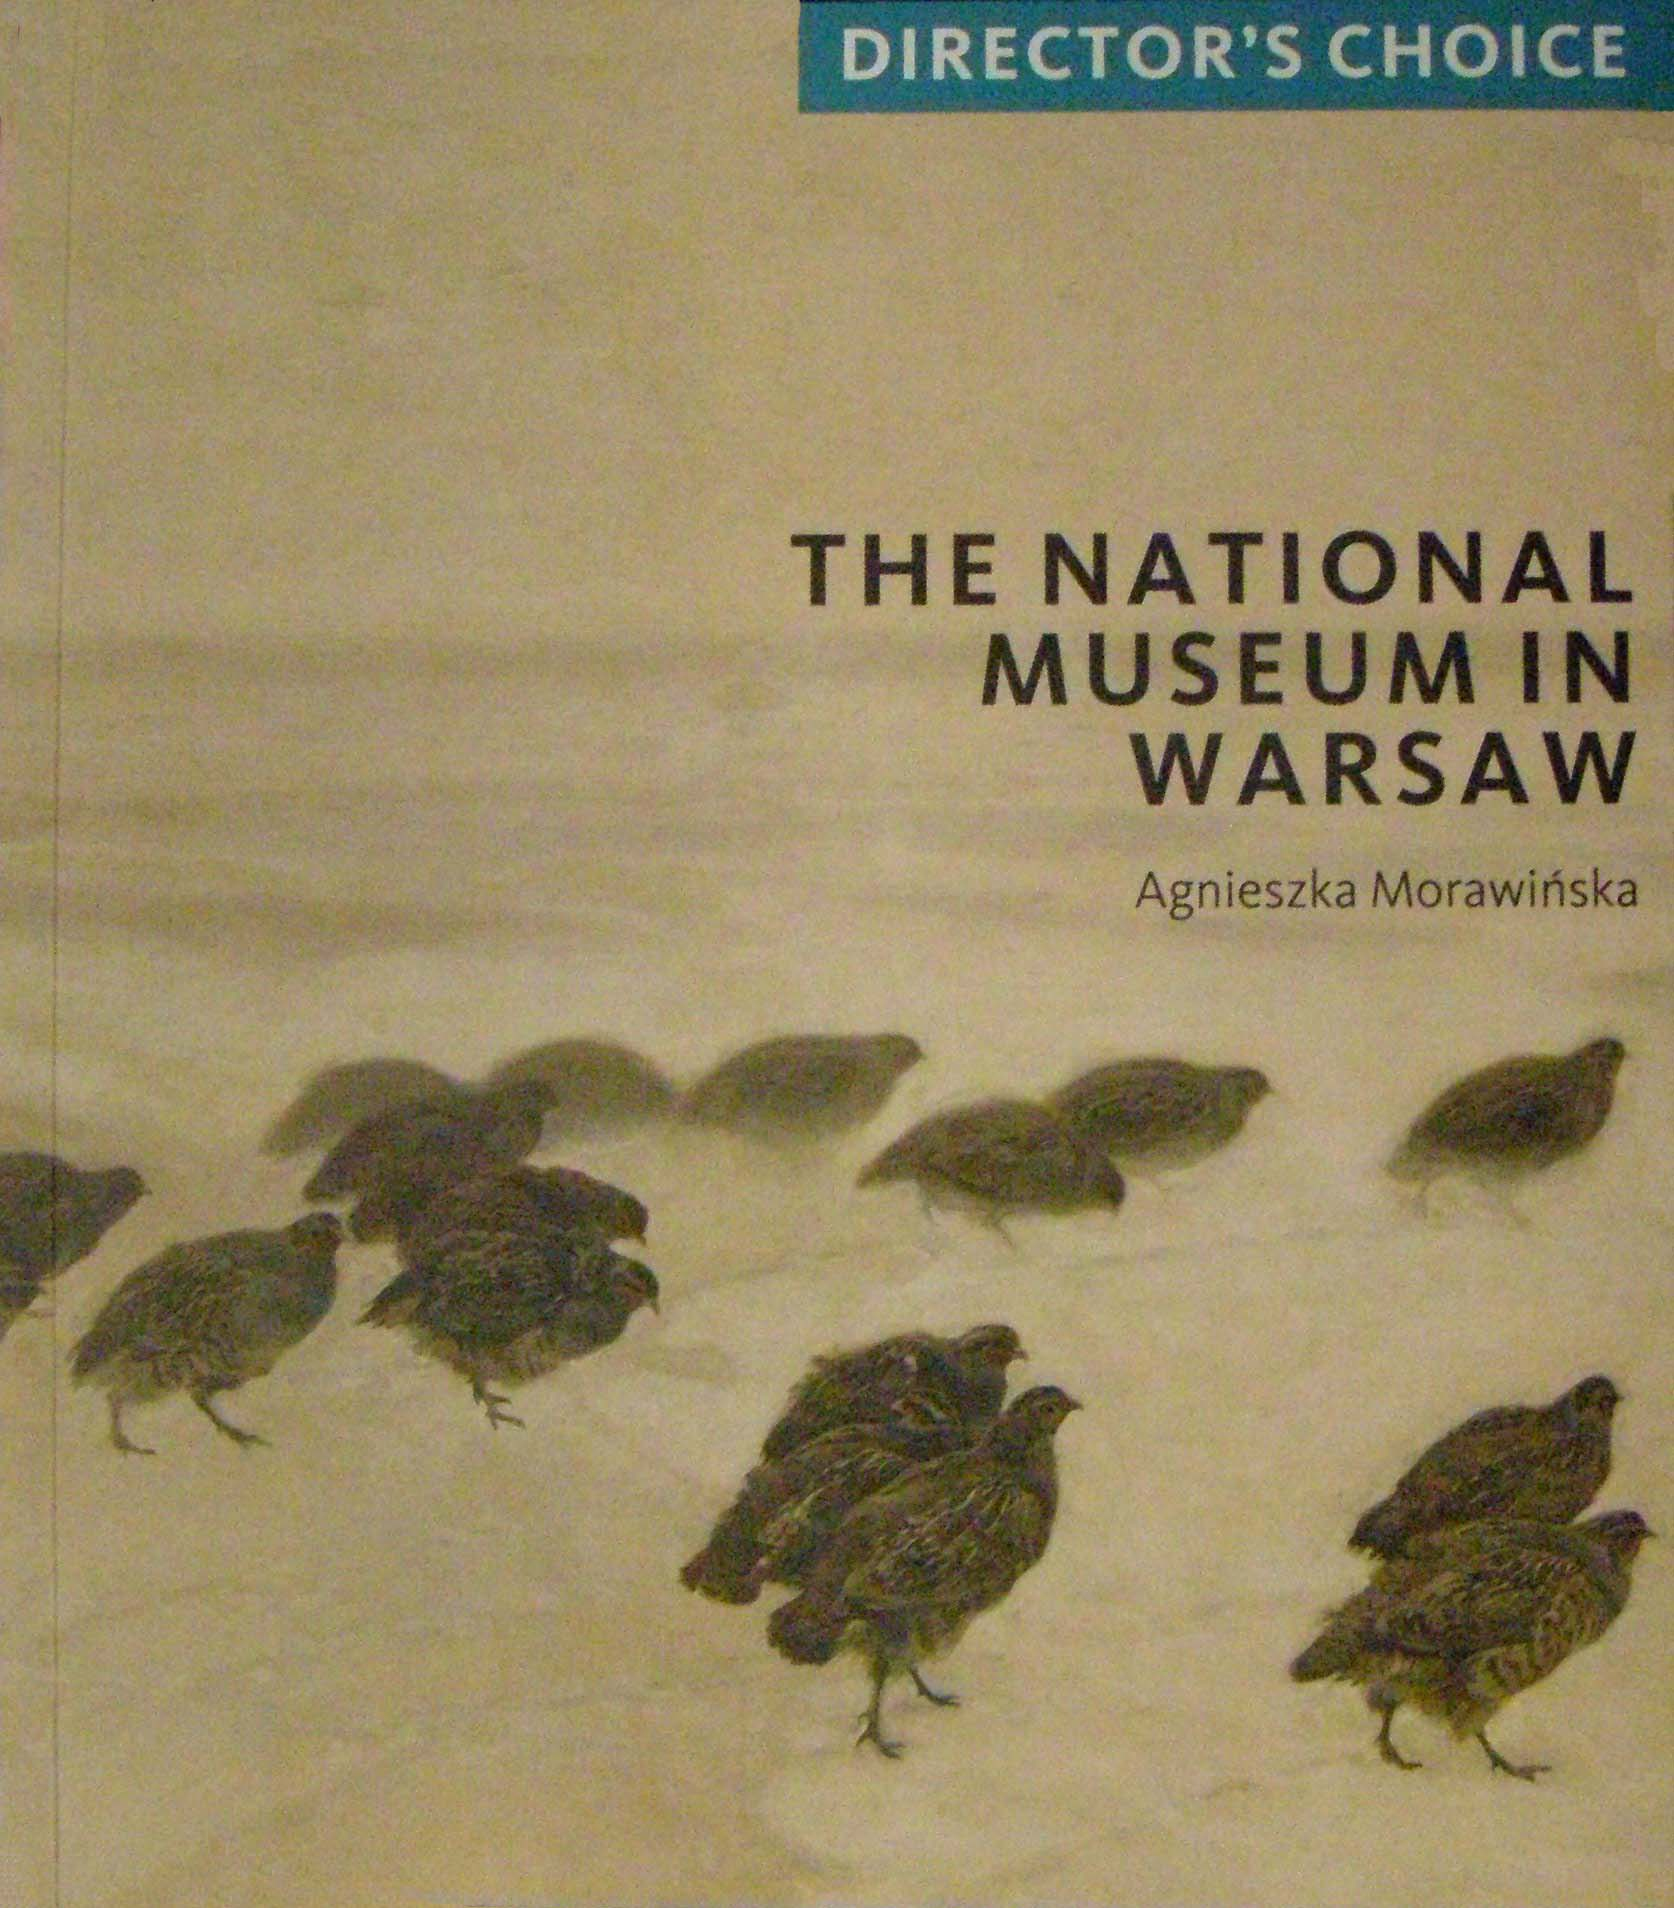 Director's Choice. The National Museum in Warsaw